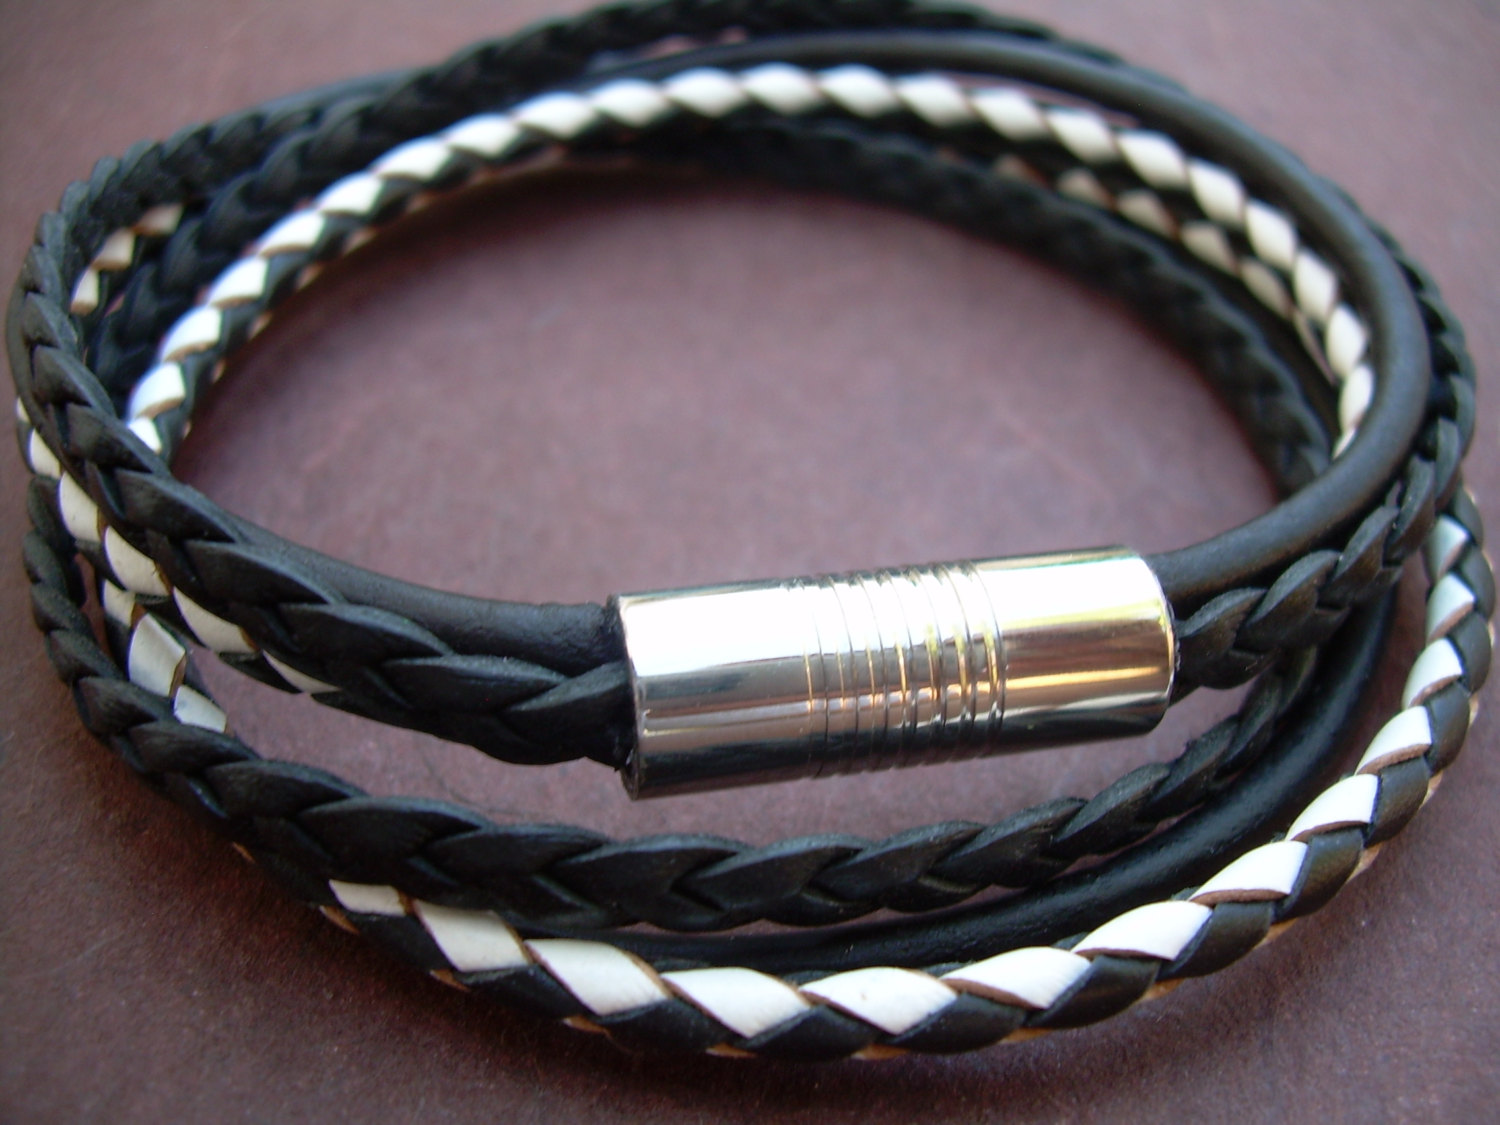 05d235974e7 Mens Black and White Triple Strand Double Wrap Leather Bracelet, Stainless  Steel Magnetic Clasp,